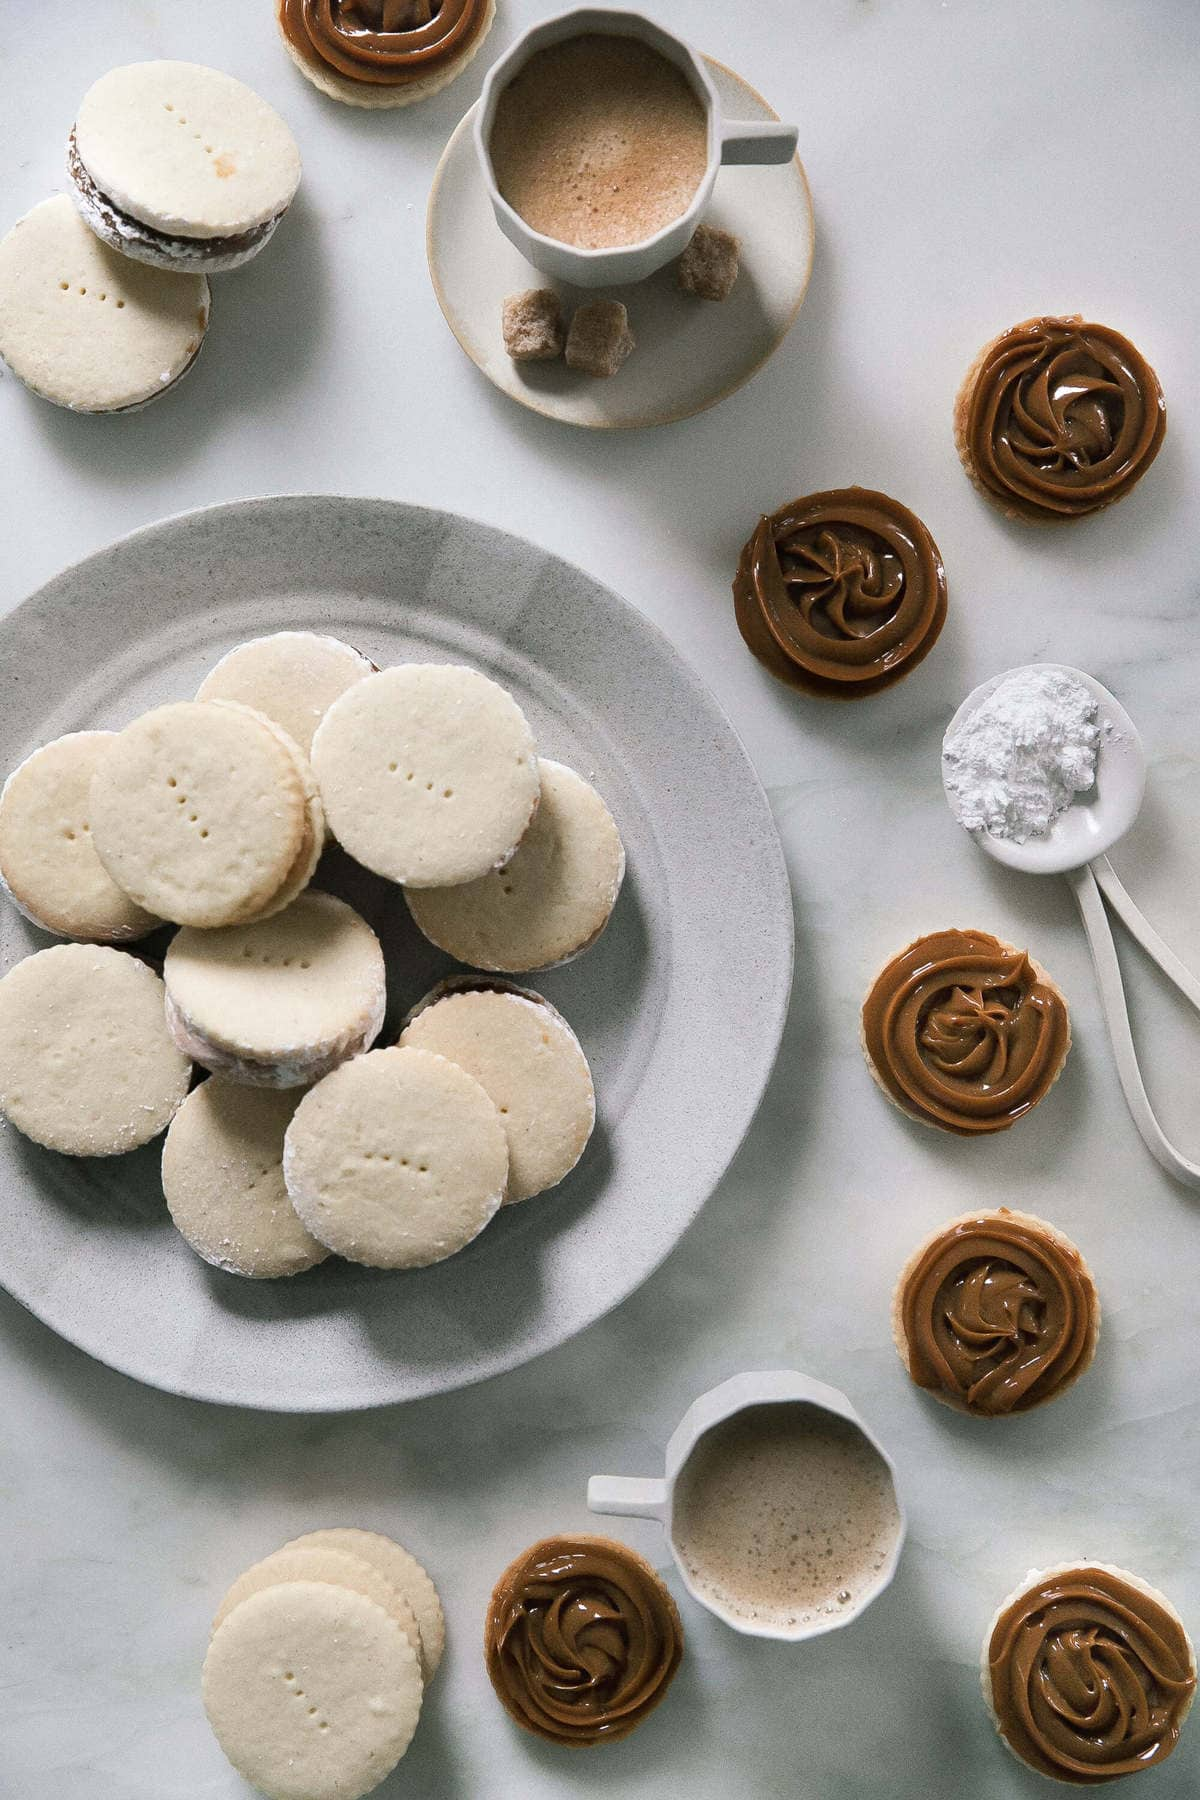 alfajores on a kitchen counter with coffee